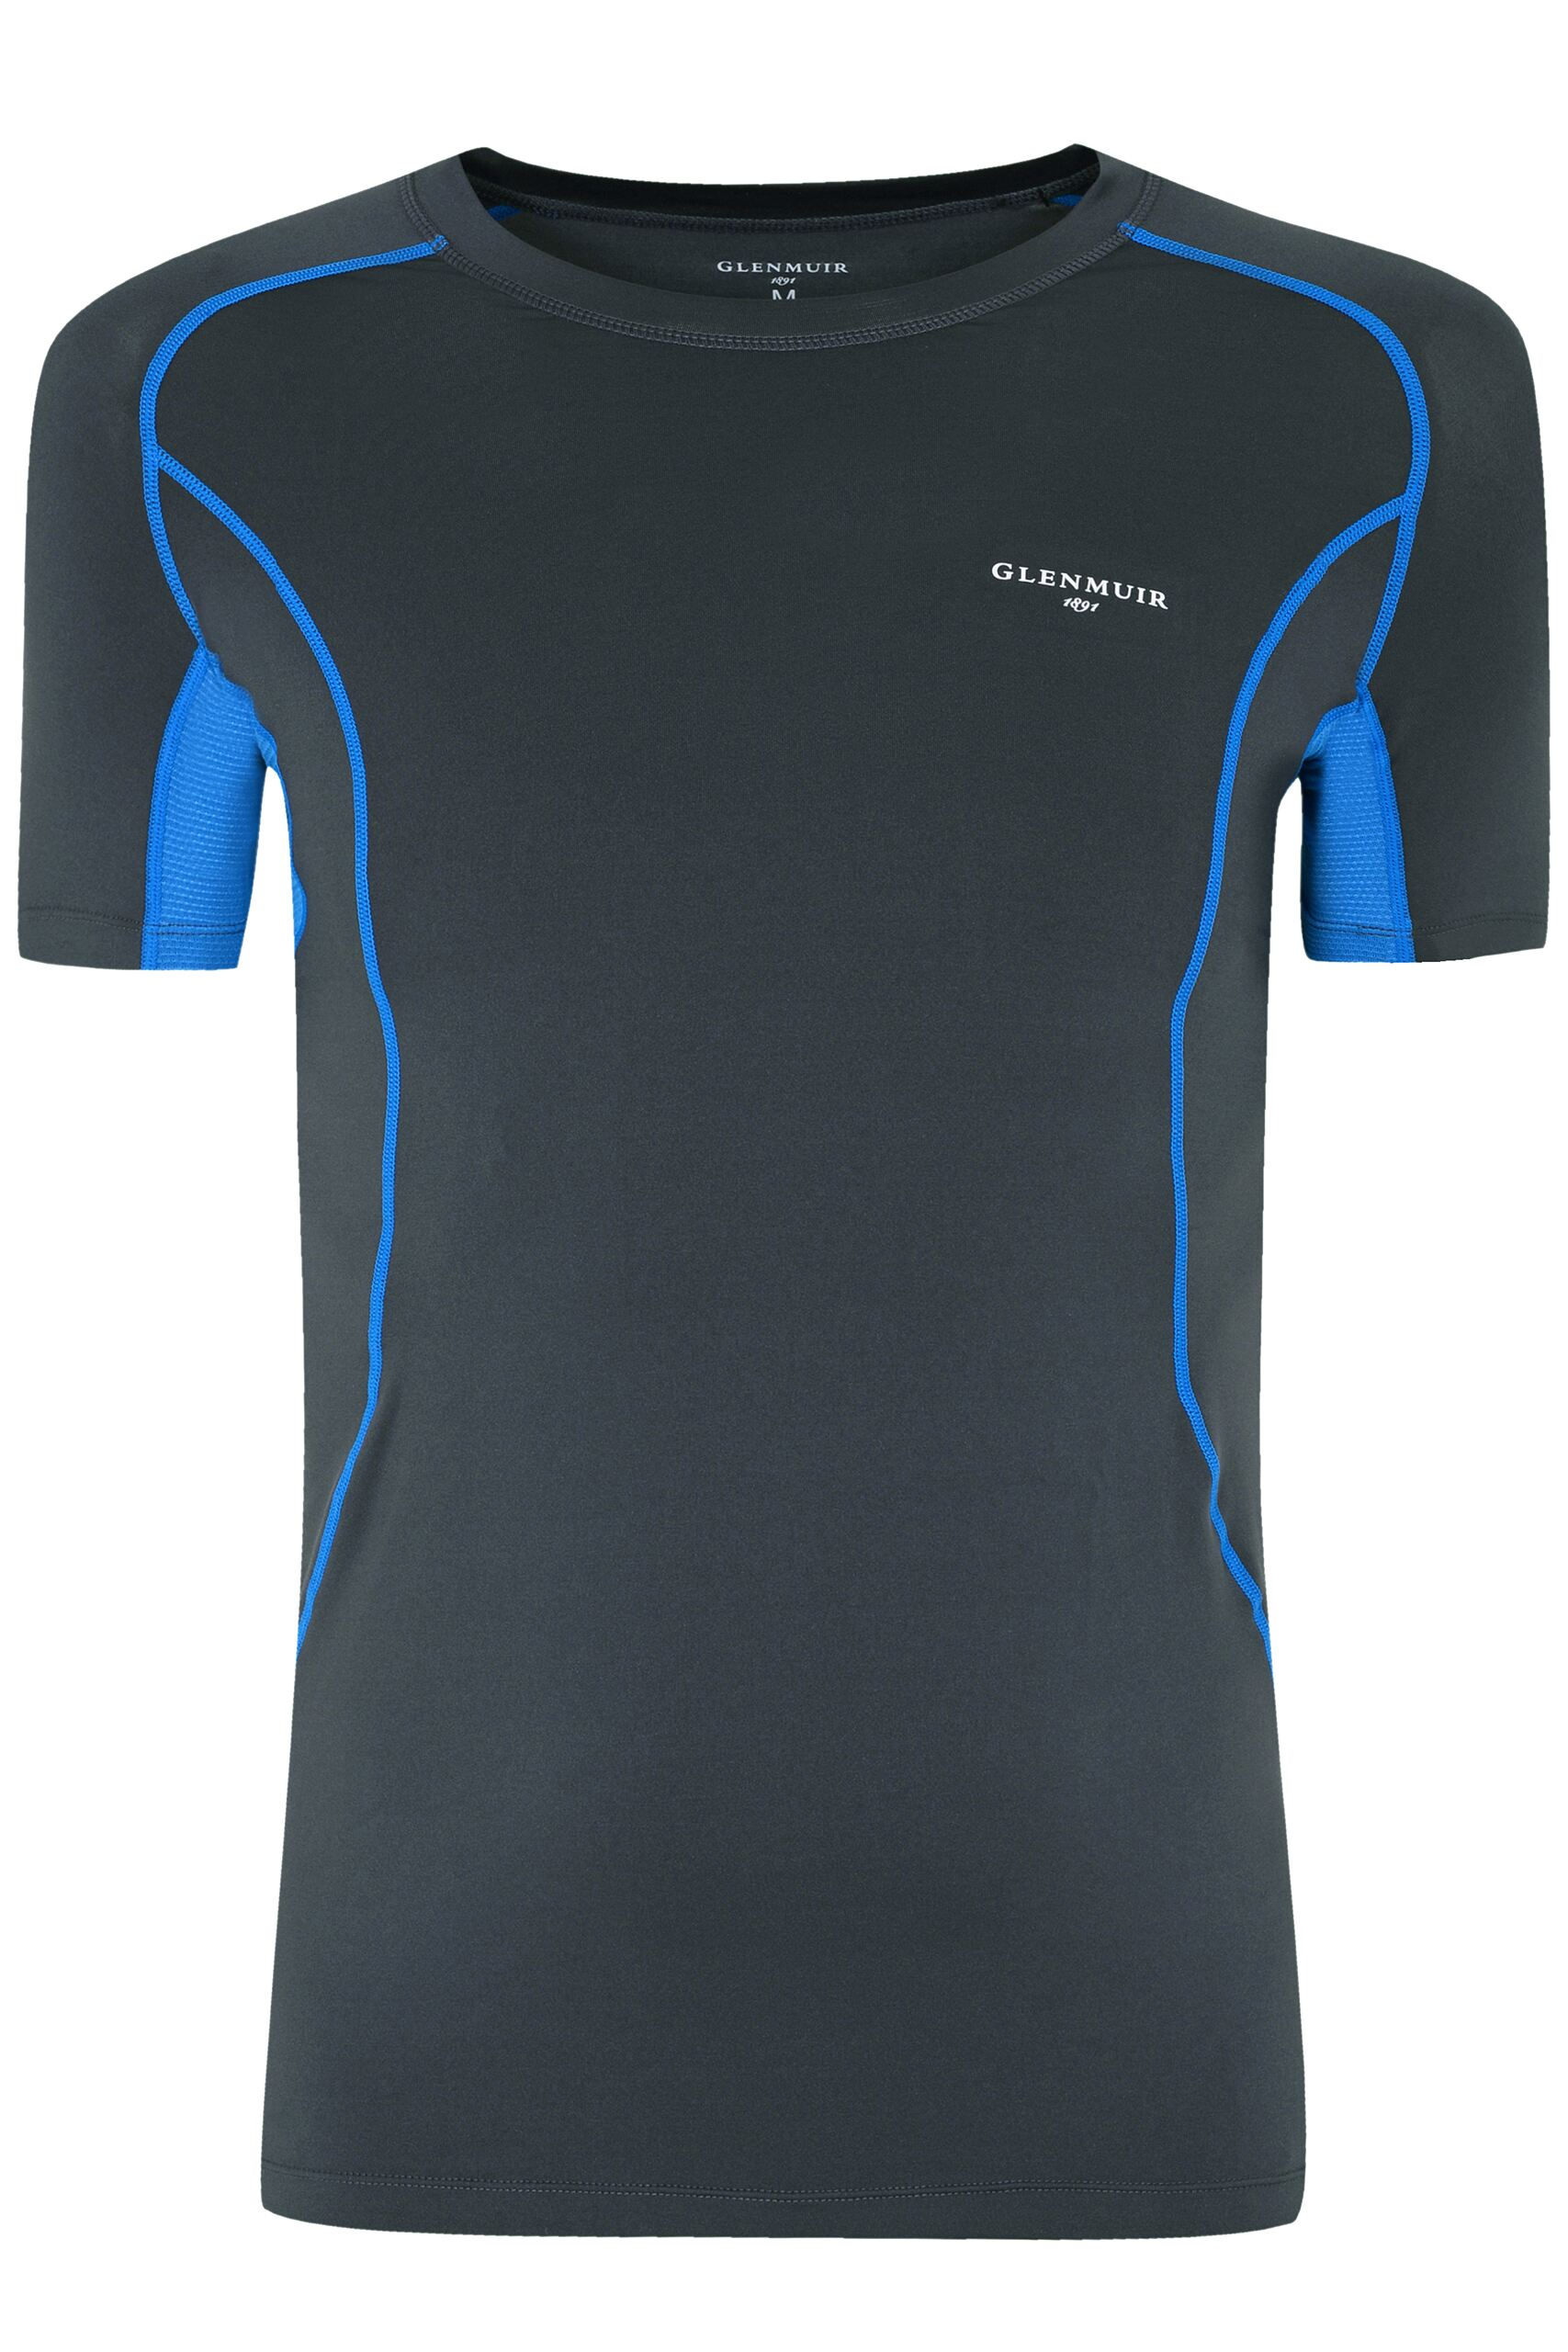 Image of 1 Pack Grey Short Sleeved Compression Base Layer T-Shirt Men's Small - Glenmuir